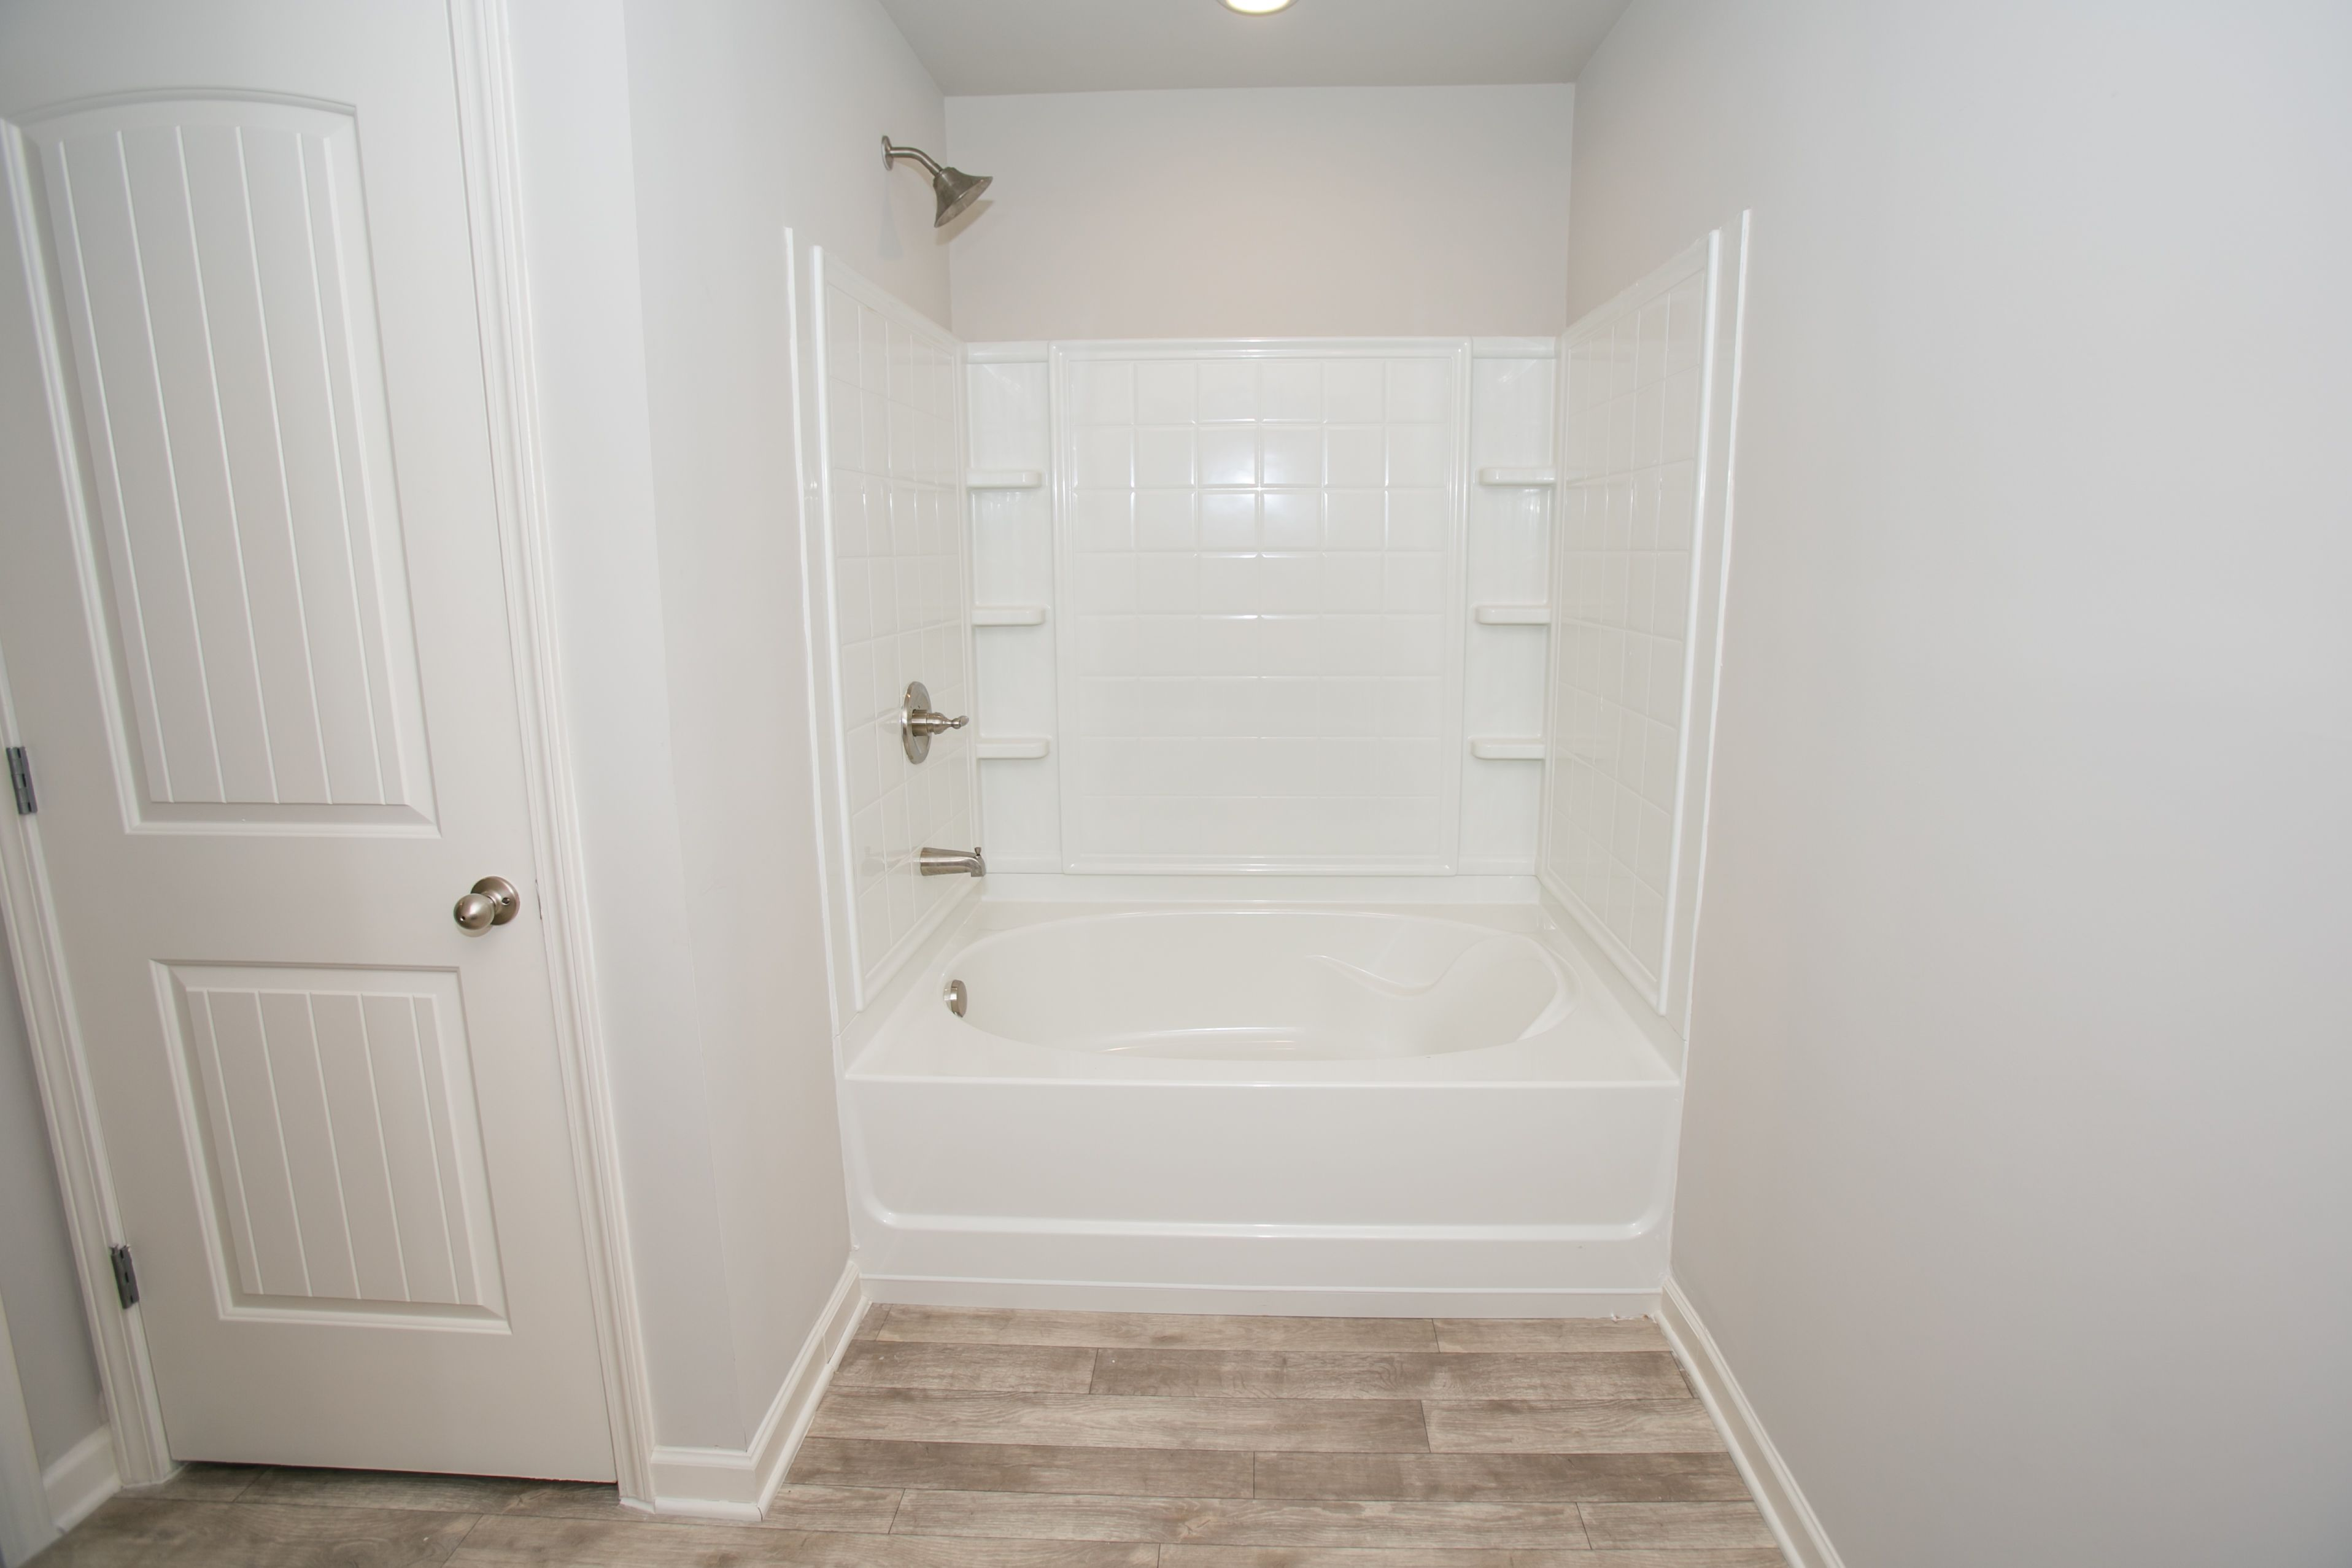 Bathroom featured in the Jodeco 2SB By Liberty Communities in Atlanta, GA